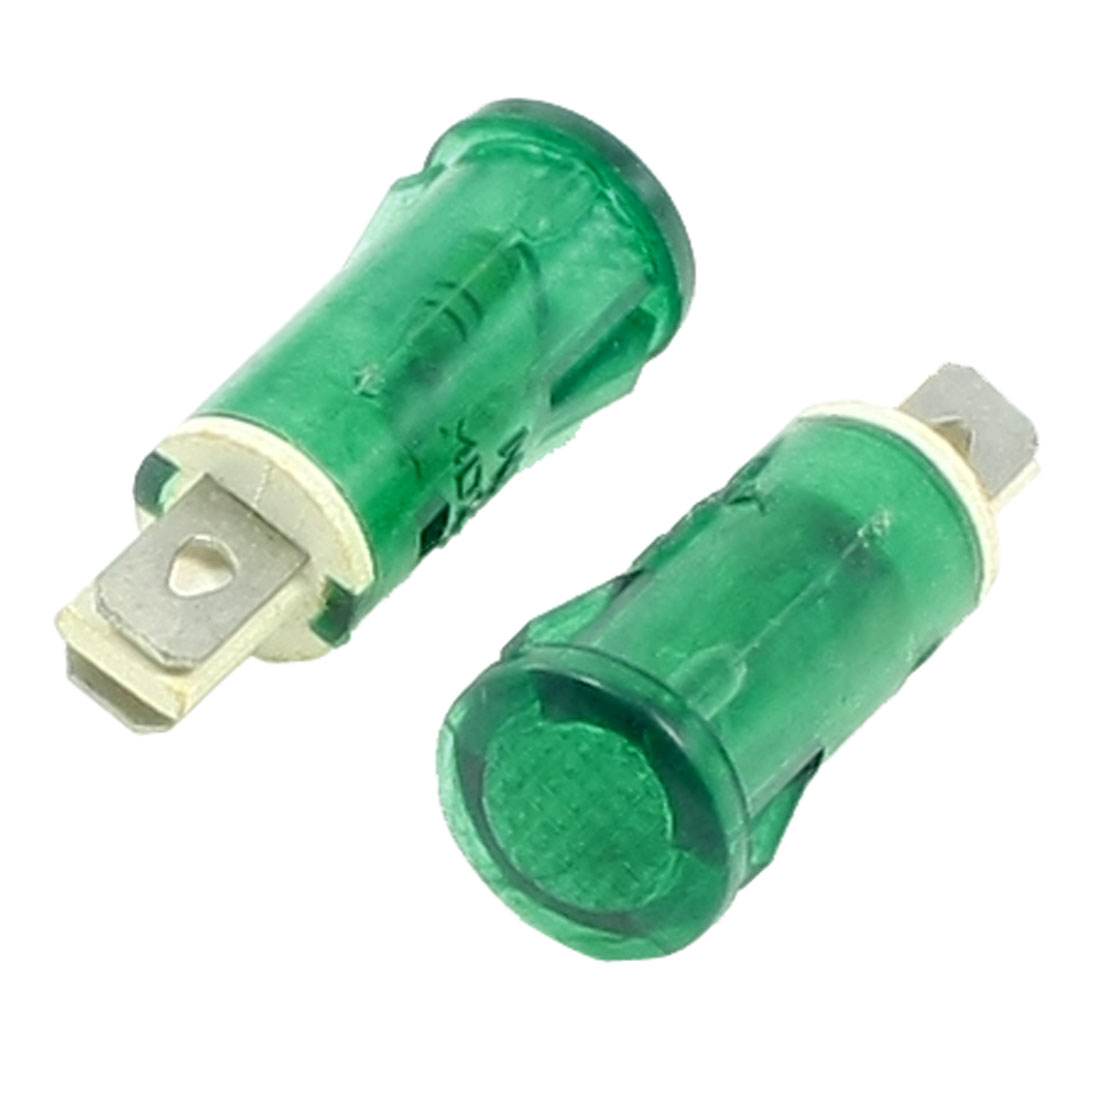 AC 220V Flat Head 2 Terminals Green Pilot Signal Indicator Light 2 Pcs